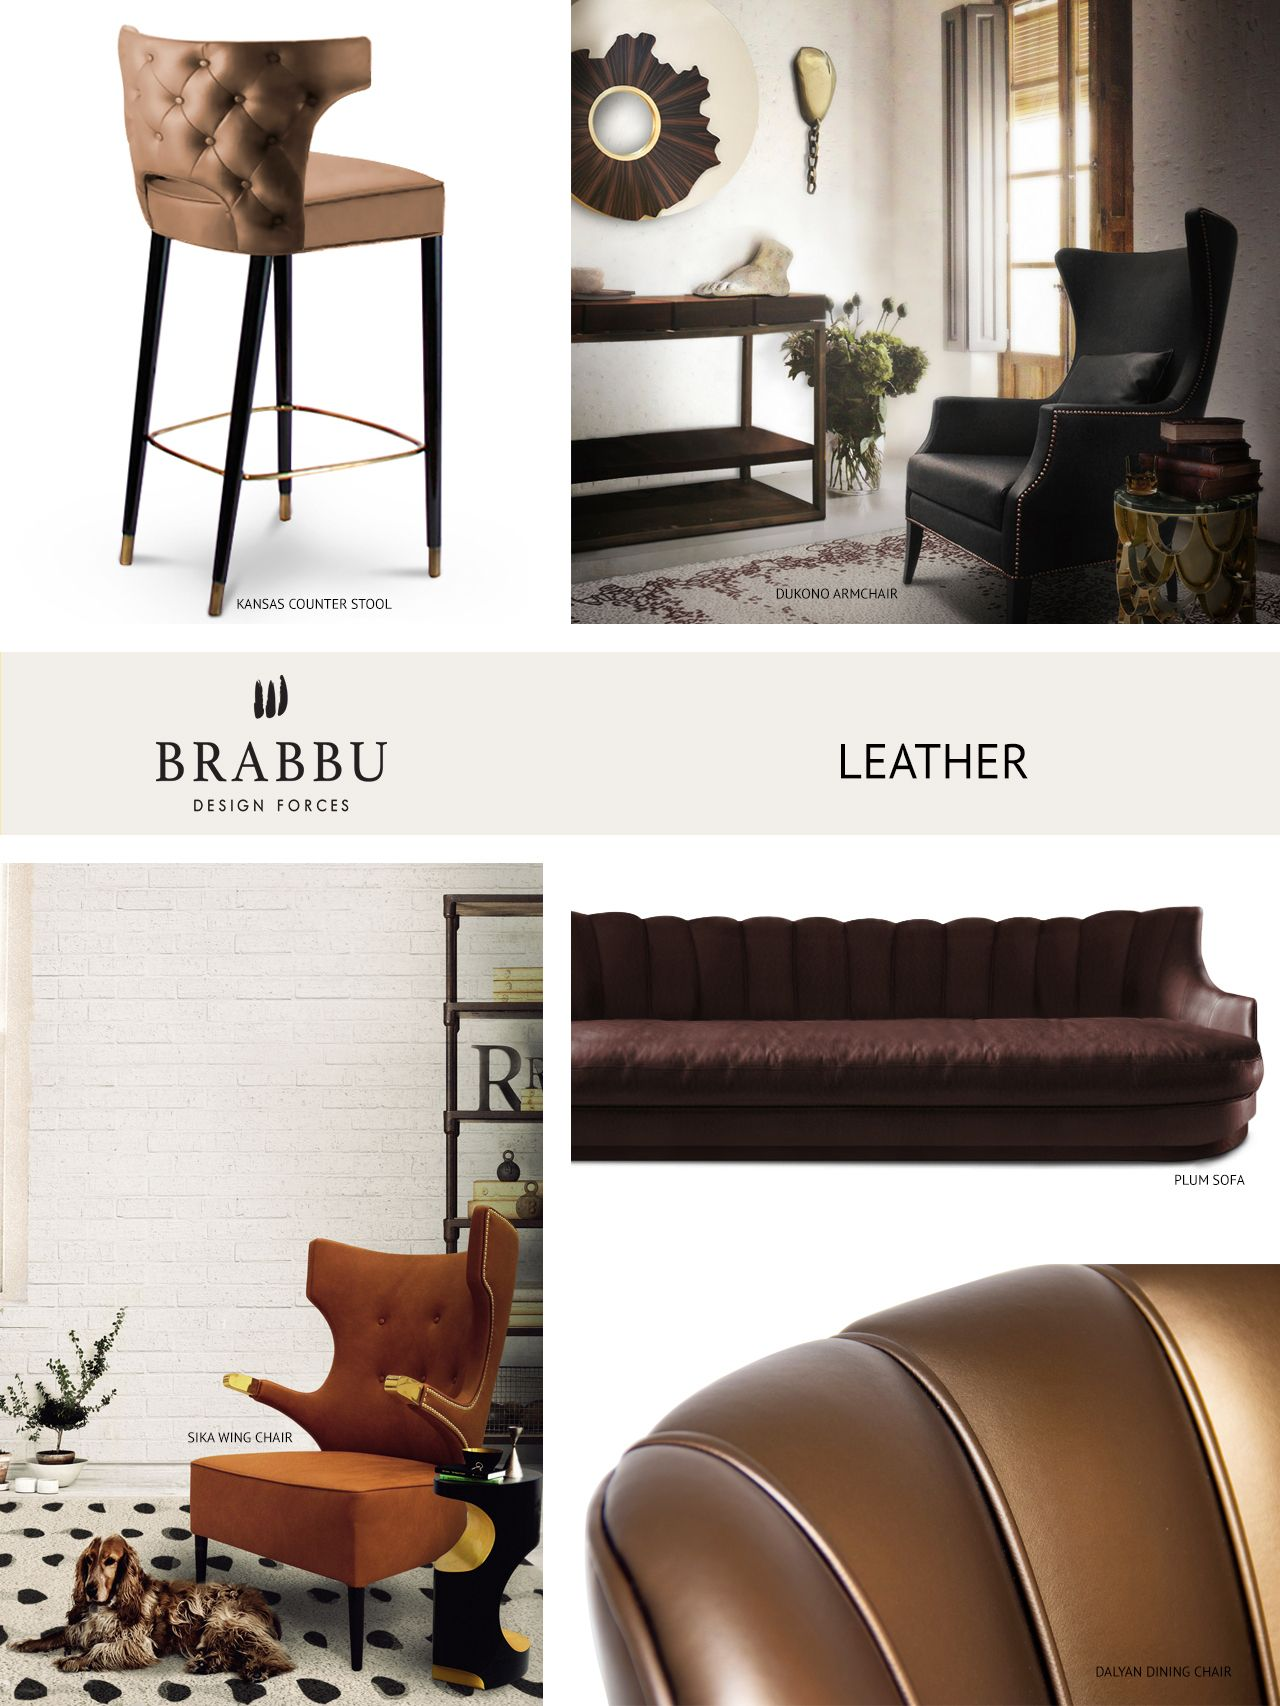 BRABBU Created A Unique Set Of Mood Boards With Inspirational Ideas For  Living Room Ideas 2017 Based On The Materials That Will Trend Next Year.